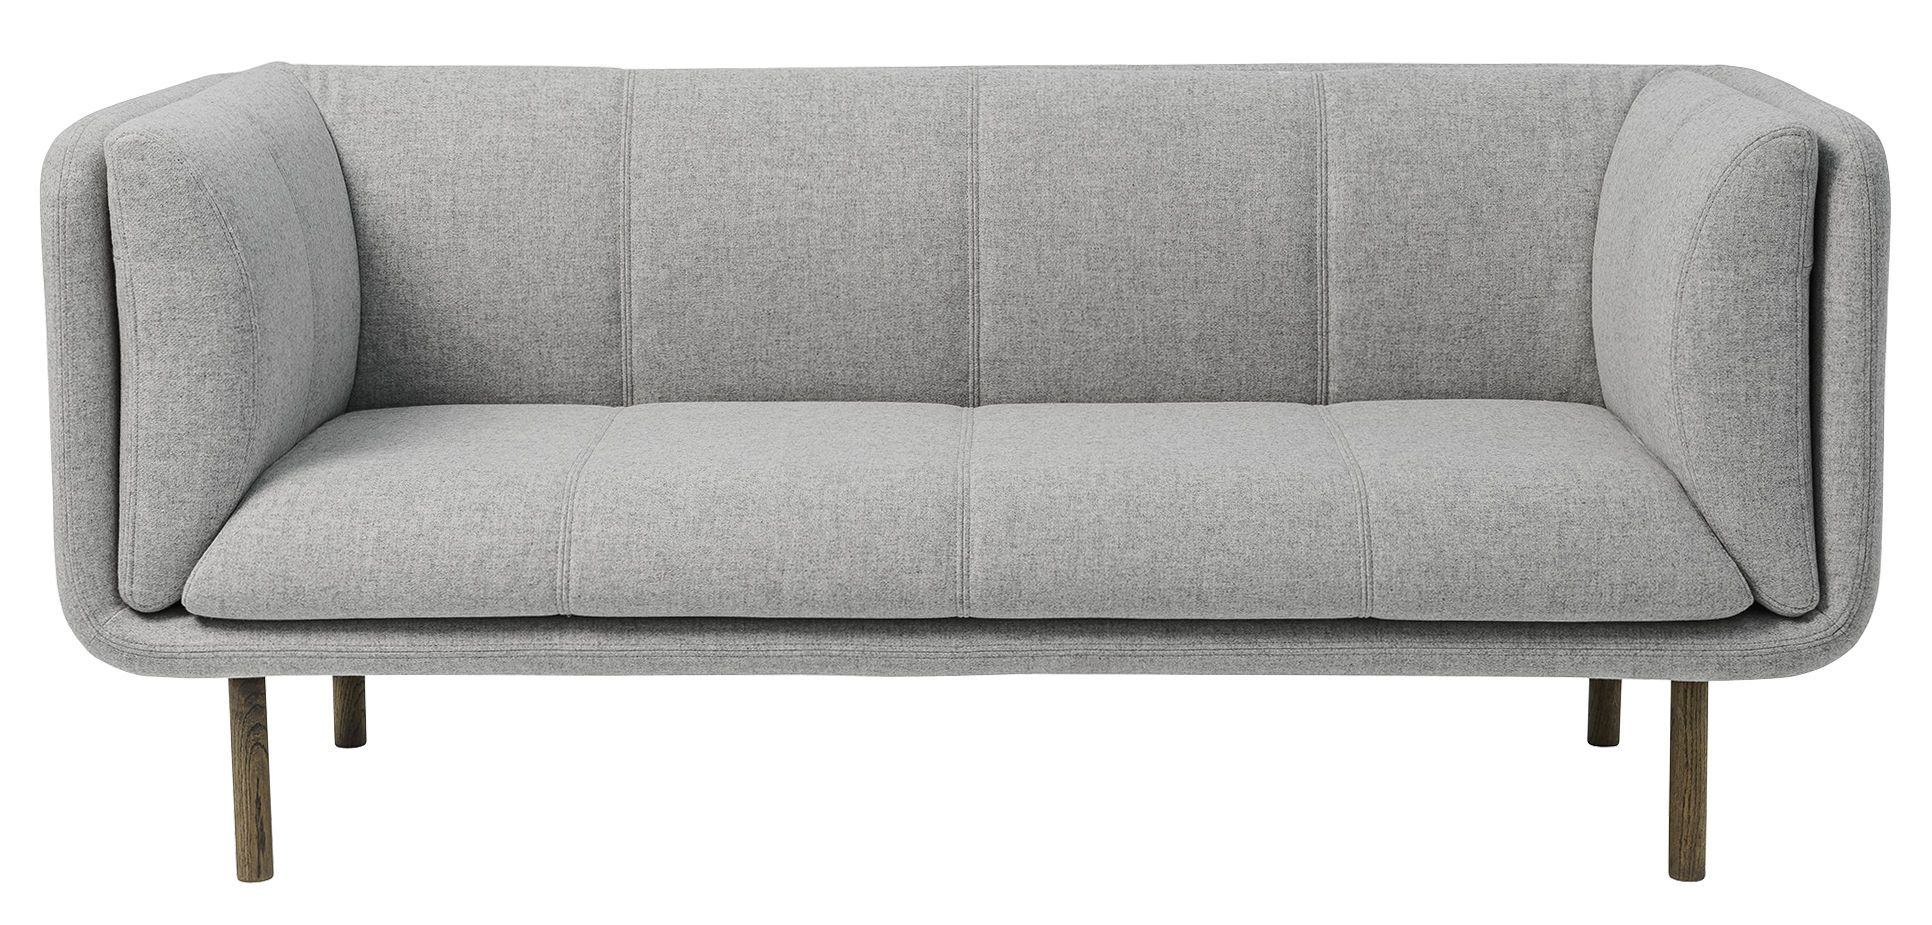 Stay Sofa 2 5 Sitzer L 192 Cm Bloomingville Sofa Sofa